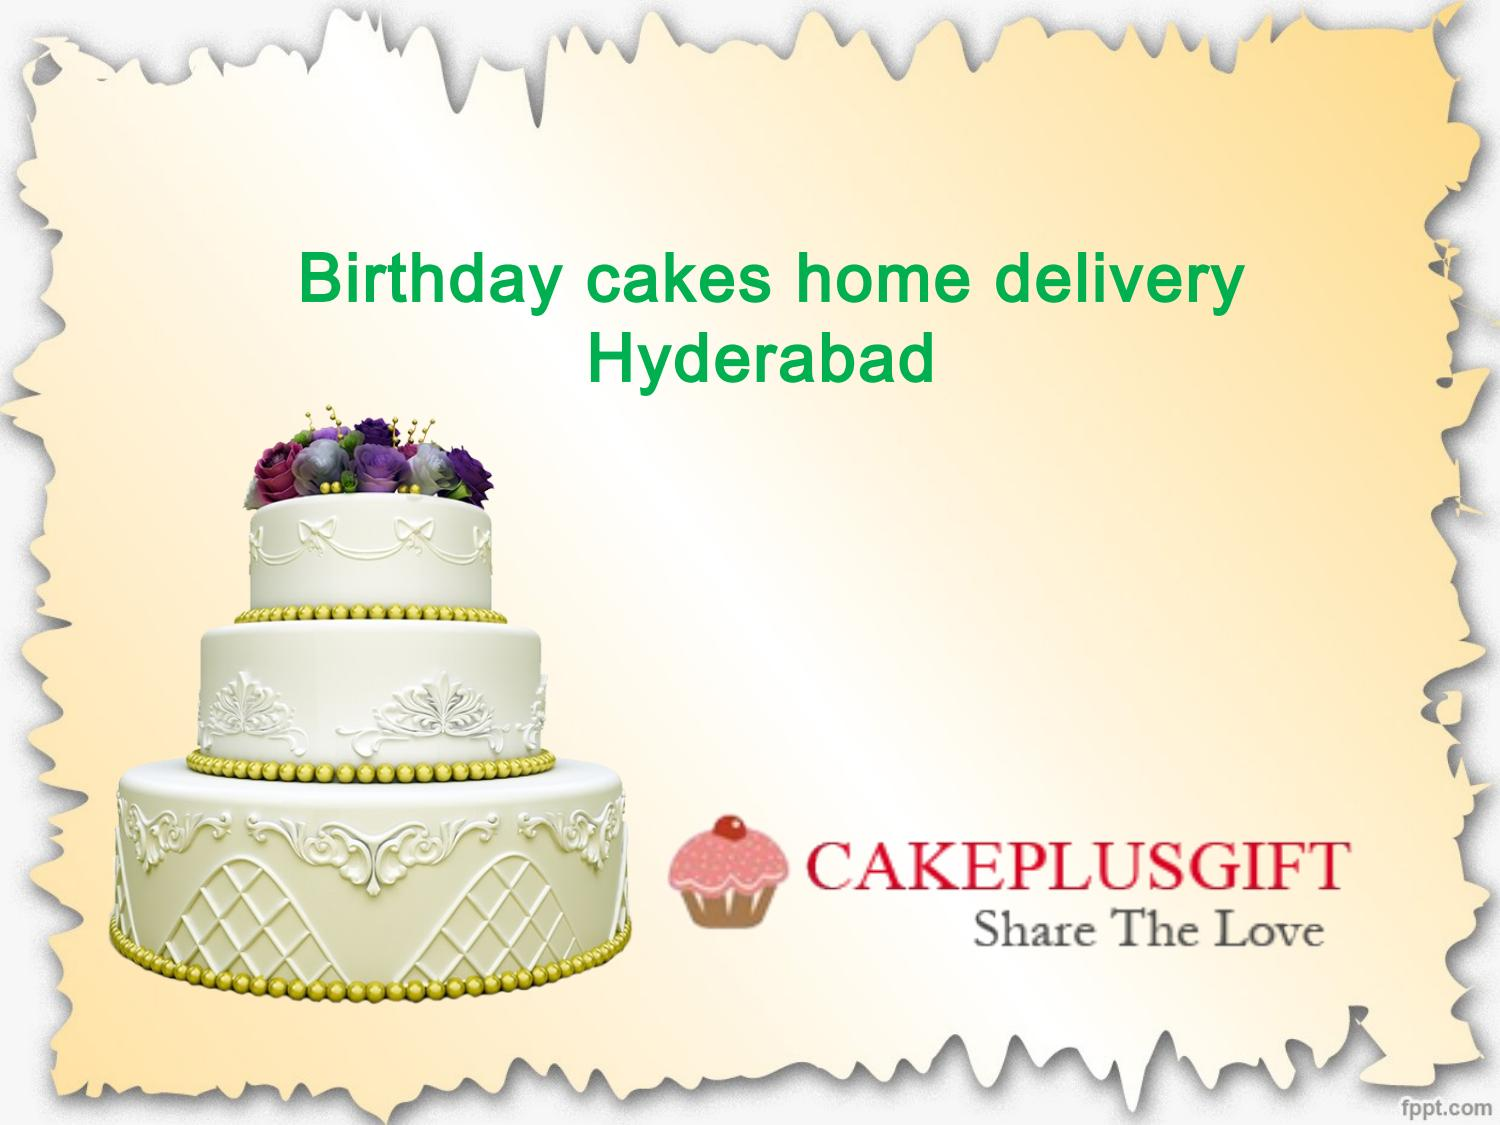 Cake Order In Hyderabad Midnight Online Birthday Cake Delivery